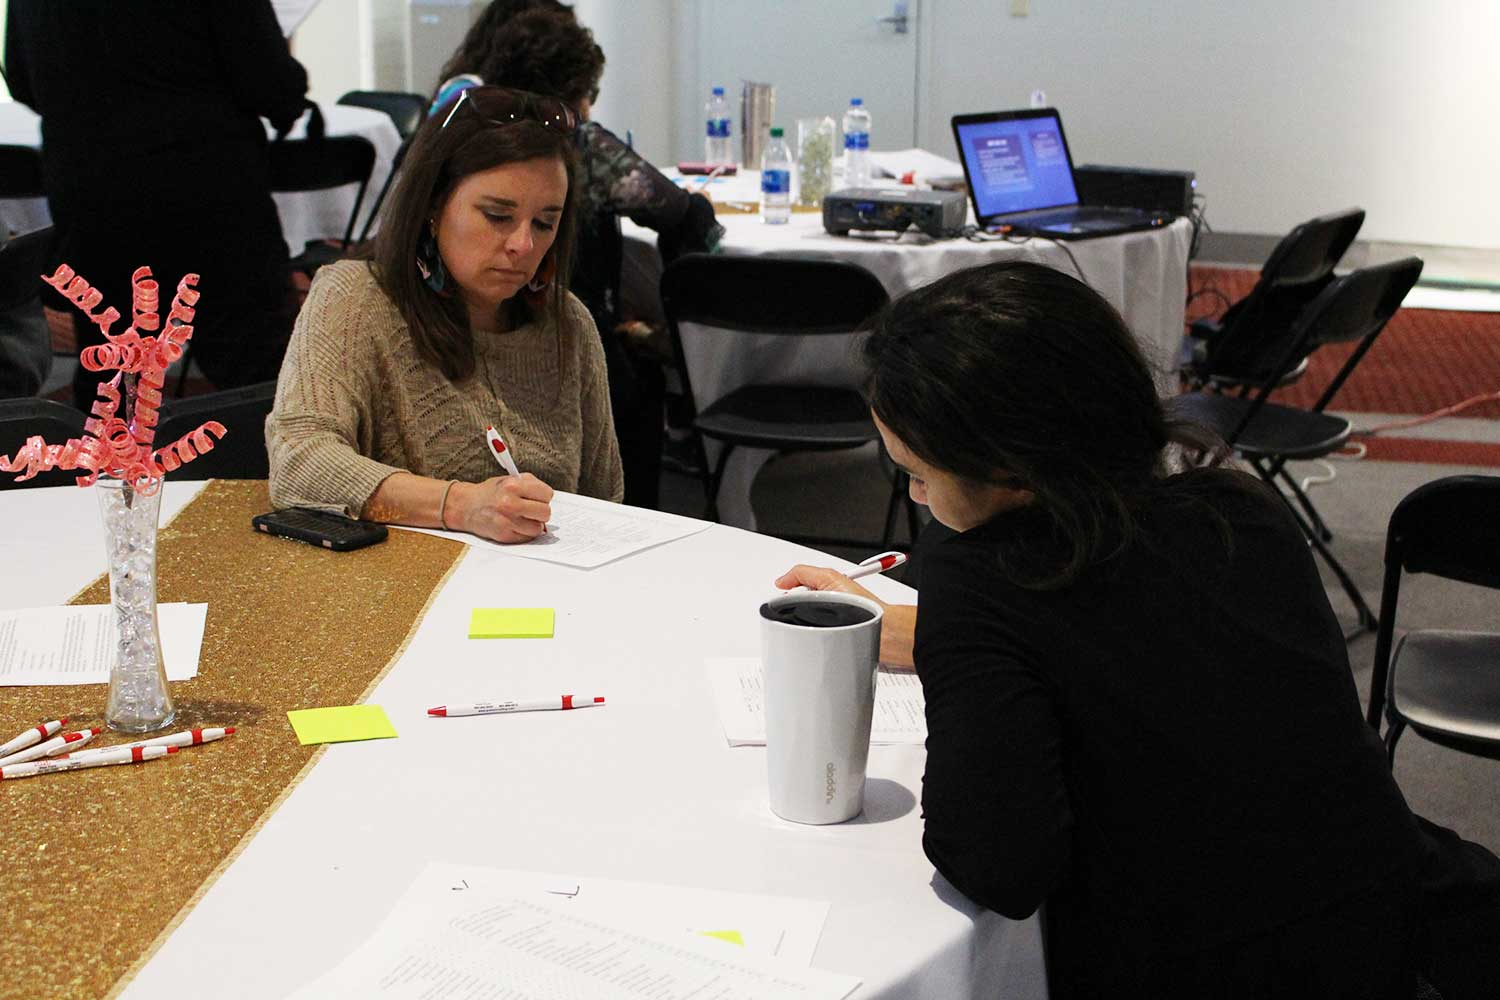 attendees work on poster project at table